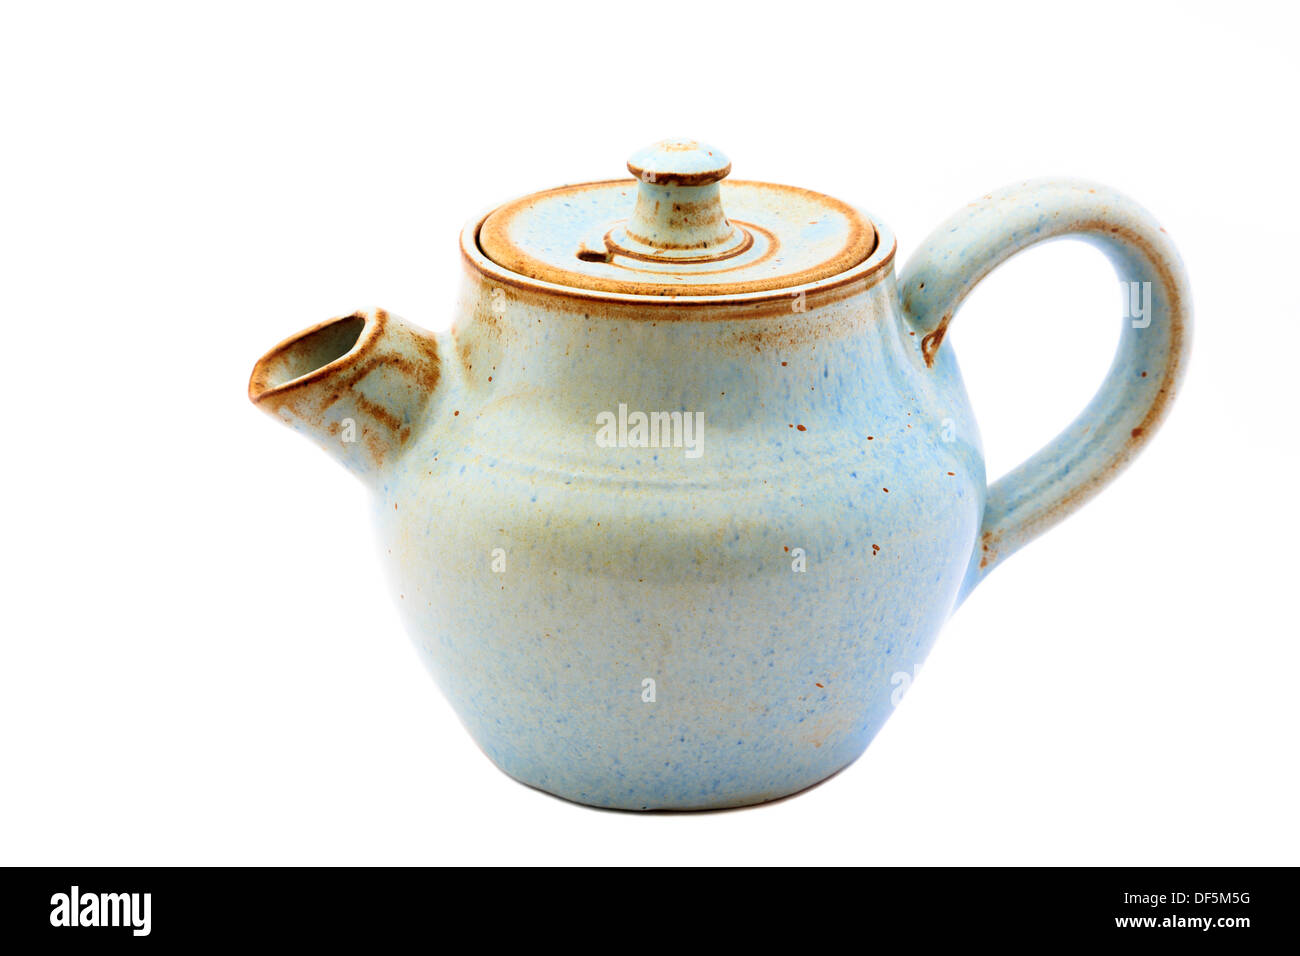 Small ceramic pottery teapot (tea pot) cut out and isolated on a white background. England UK Britain - Stock Image